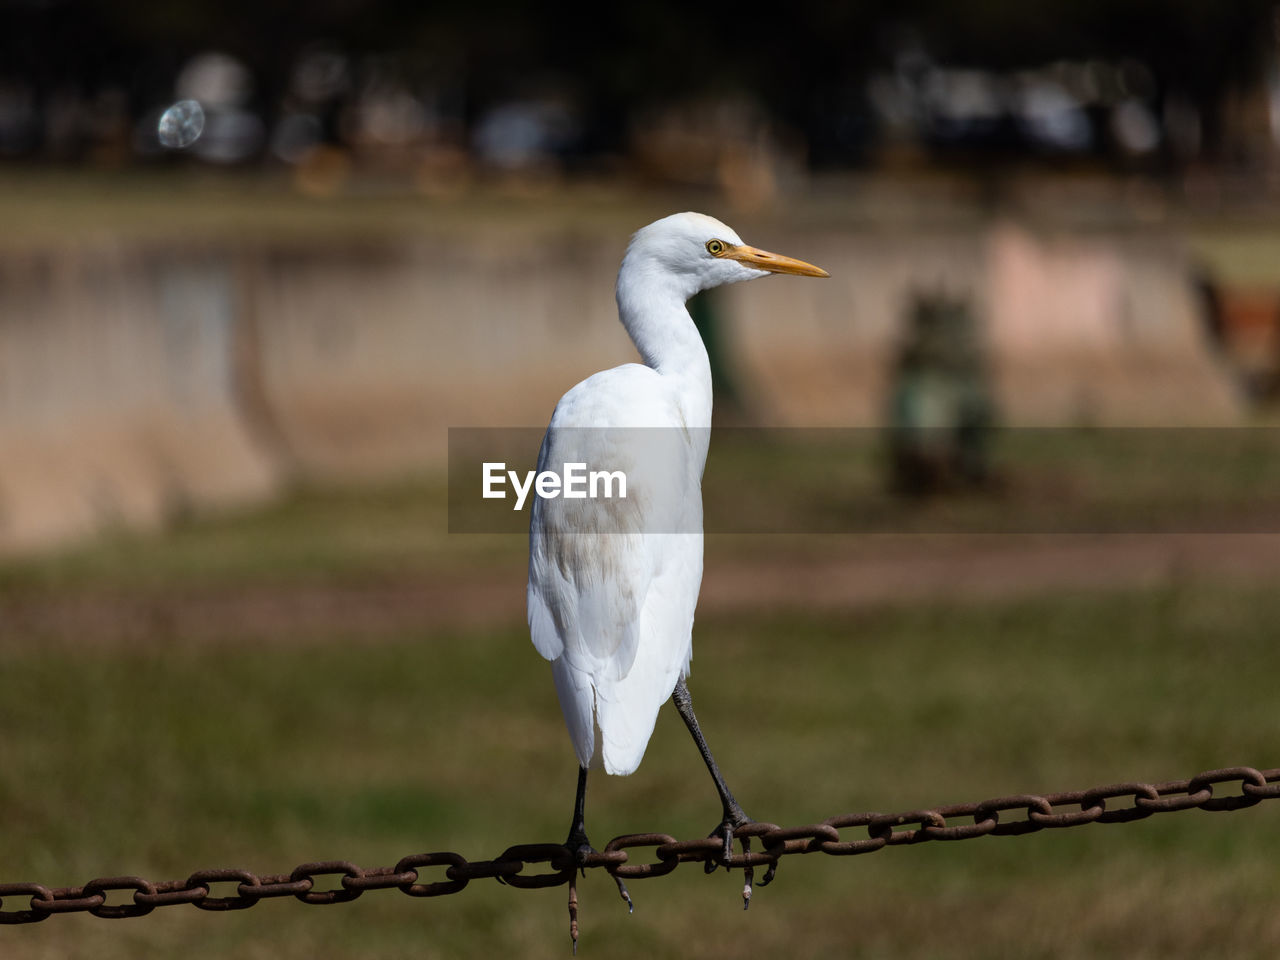 bird, animal themes, animal, focus on foreground, vertebrate, animals in the wild, animal wildlife, one animal, white color, fence, perching, no people, boundary, barrier, day, nature, metal, safety, egret, protection, outdoors, beak